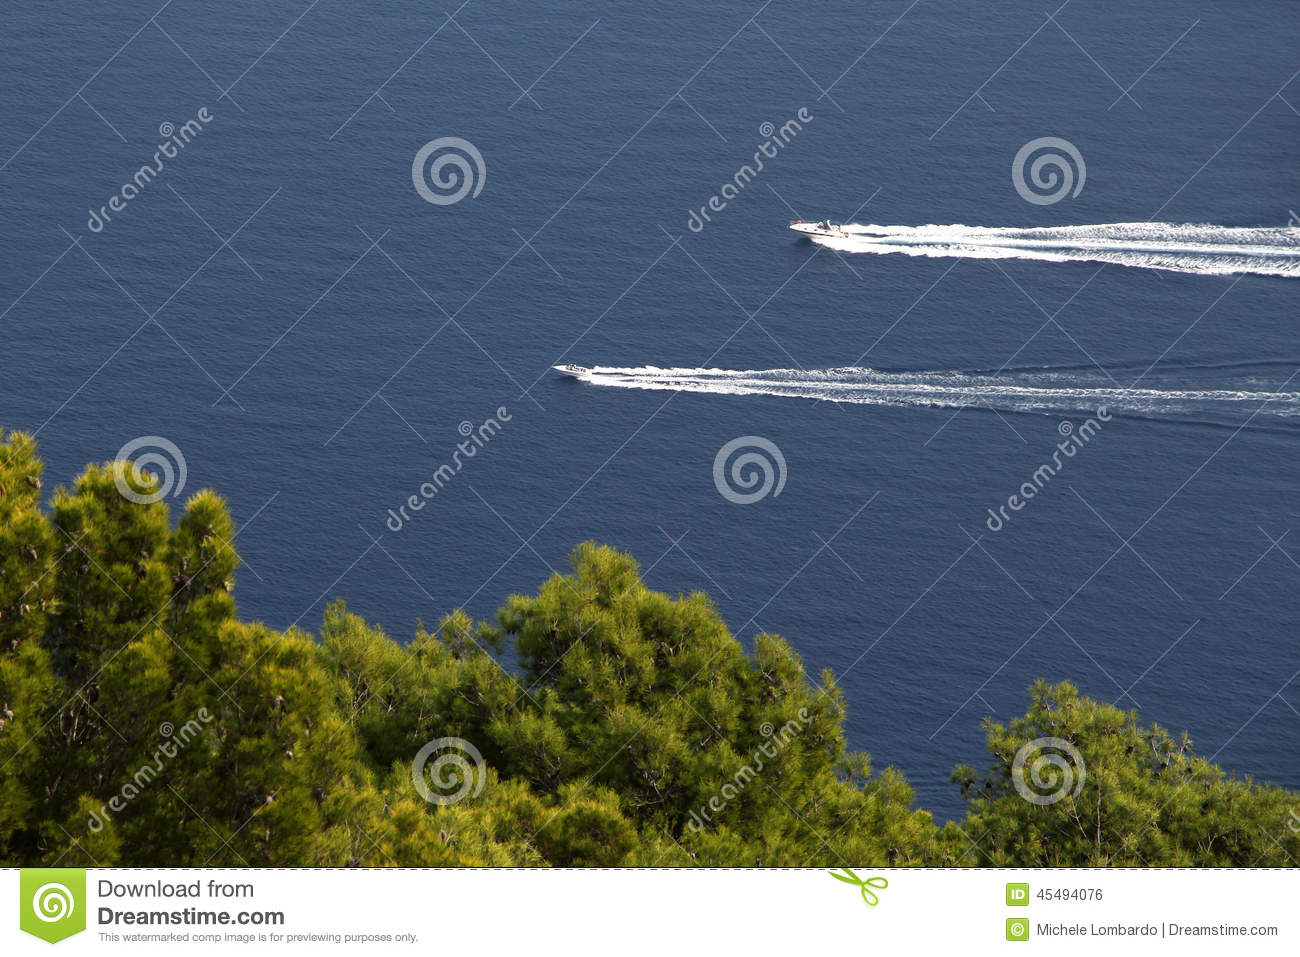 Two motorboats against a blue sea and trees